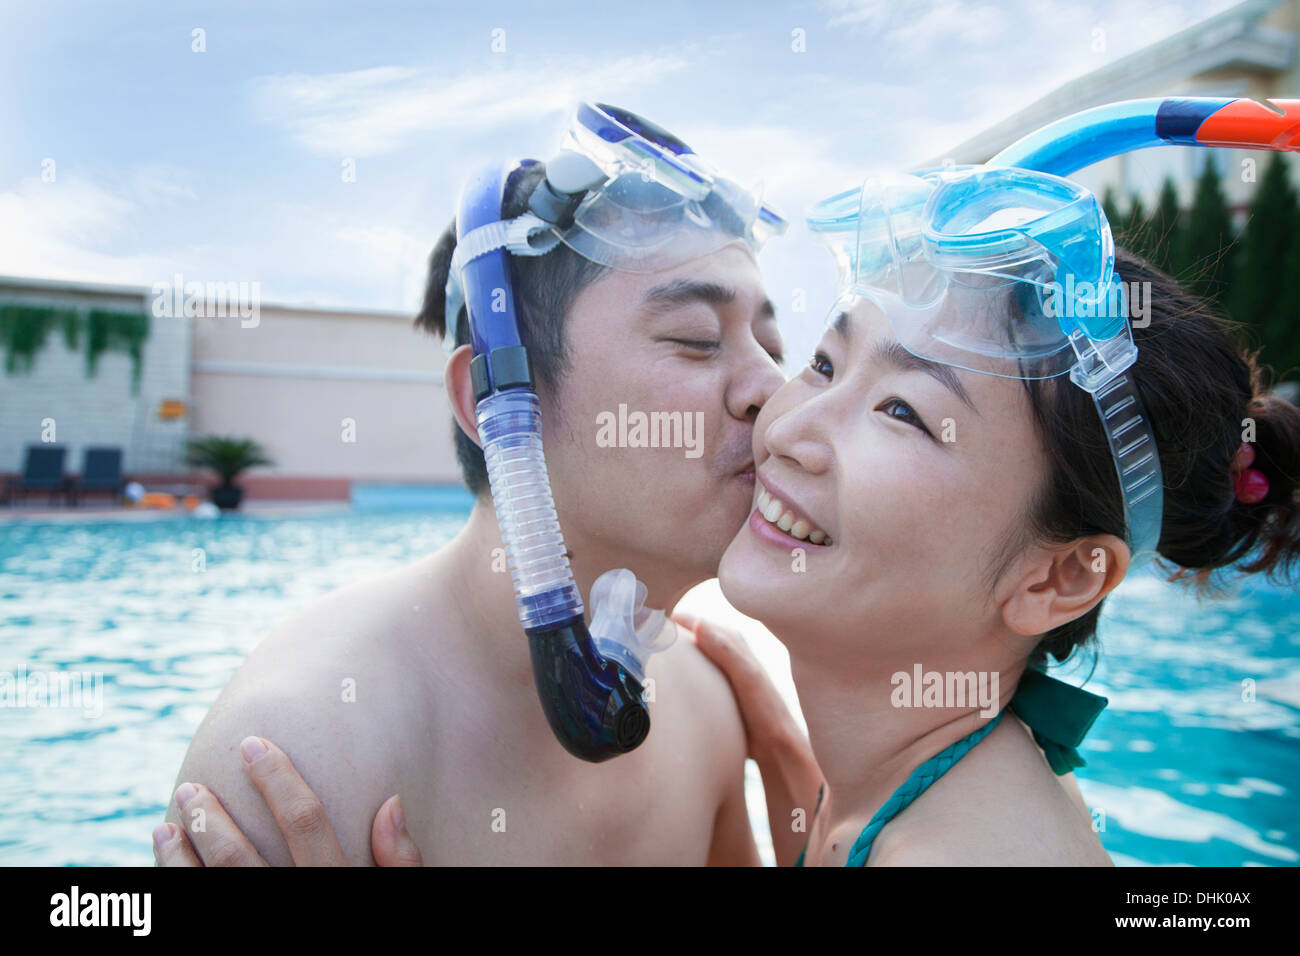 Smiling couple kissing on the cheek wearing snorkeling gear in the pool - Stock Image